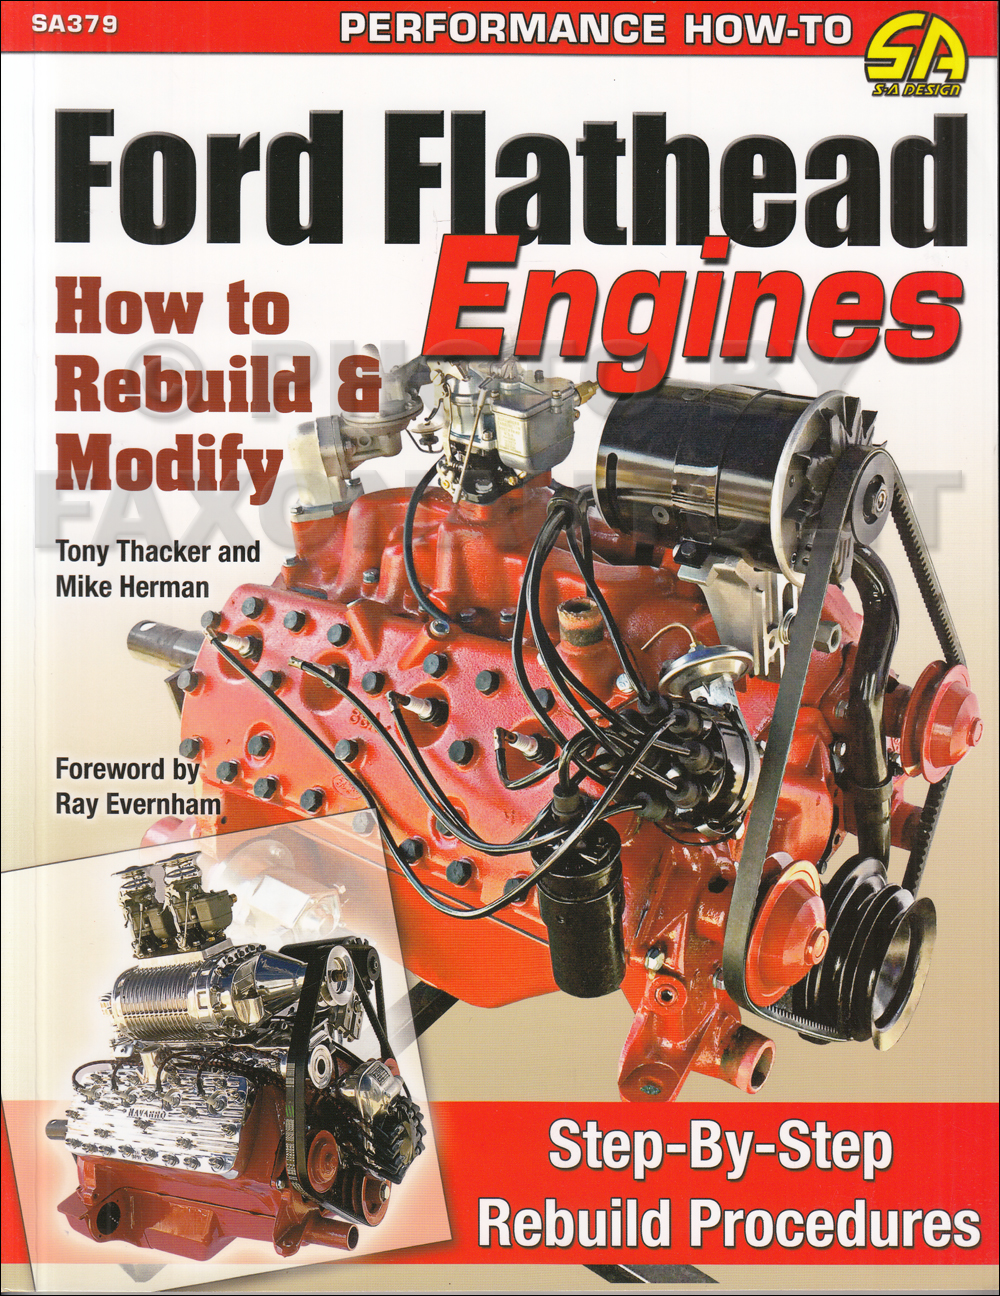 How to Rebuild & Modify Ford Flathead Engines 8BA 239